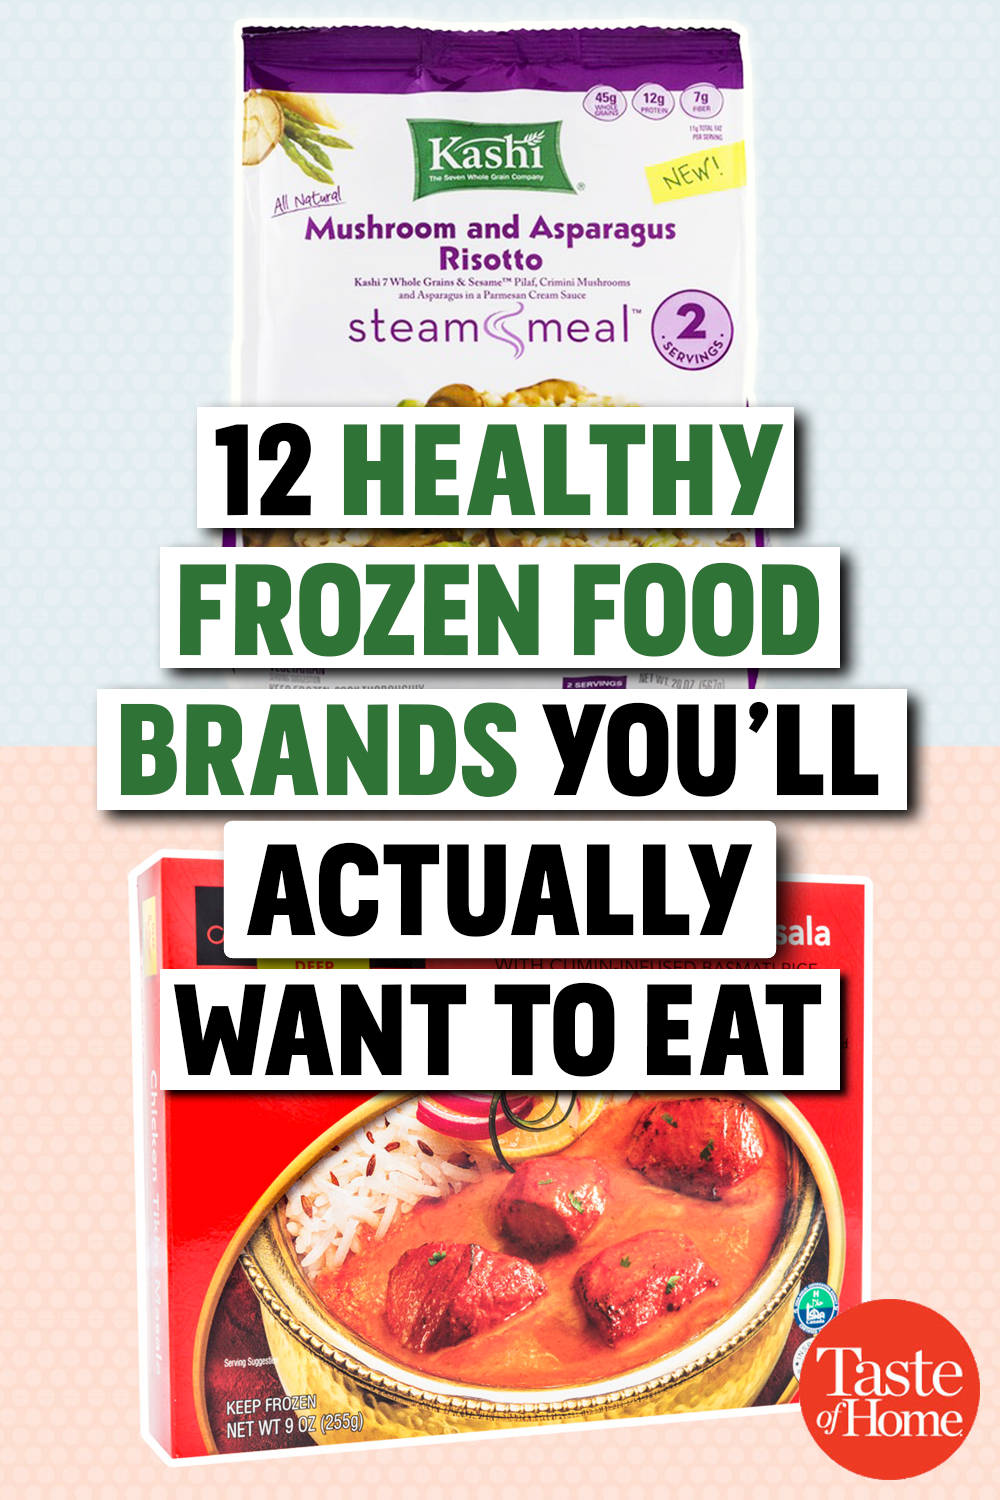 12 Frozen Food Brands You'll Actually Want to Eat in 2019